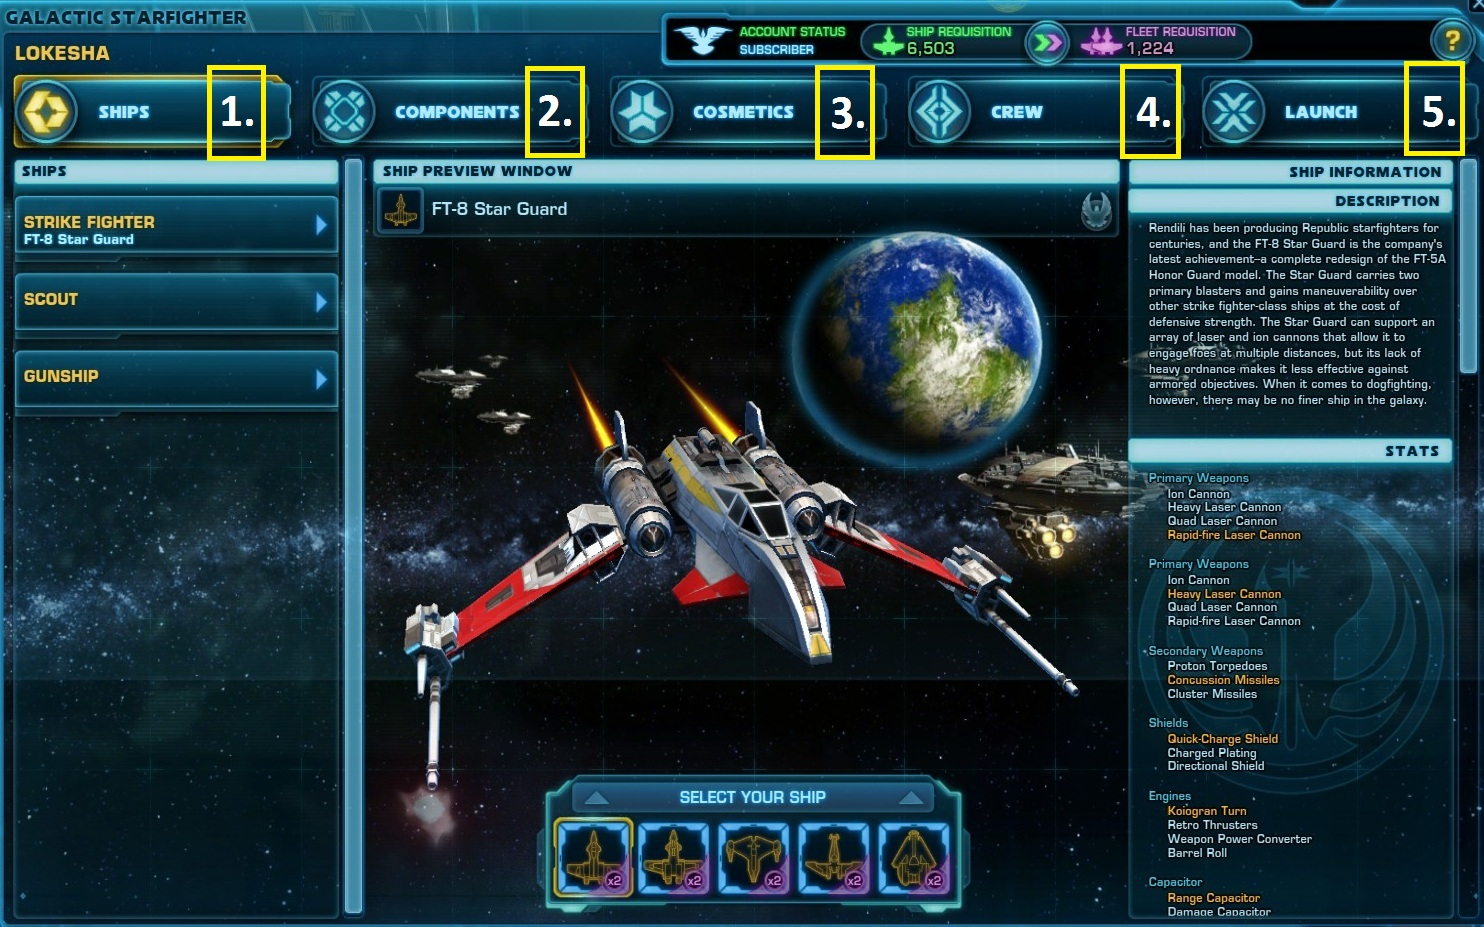 Galactic Starfighter Menu